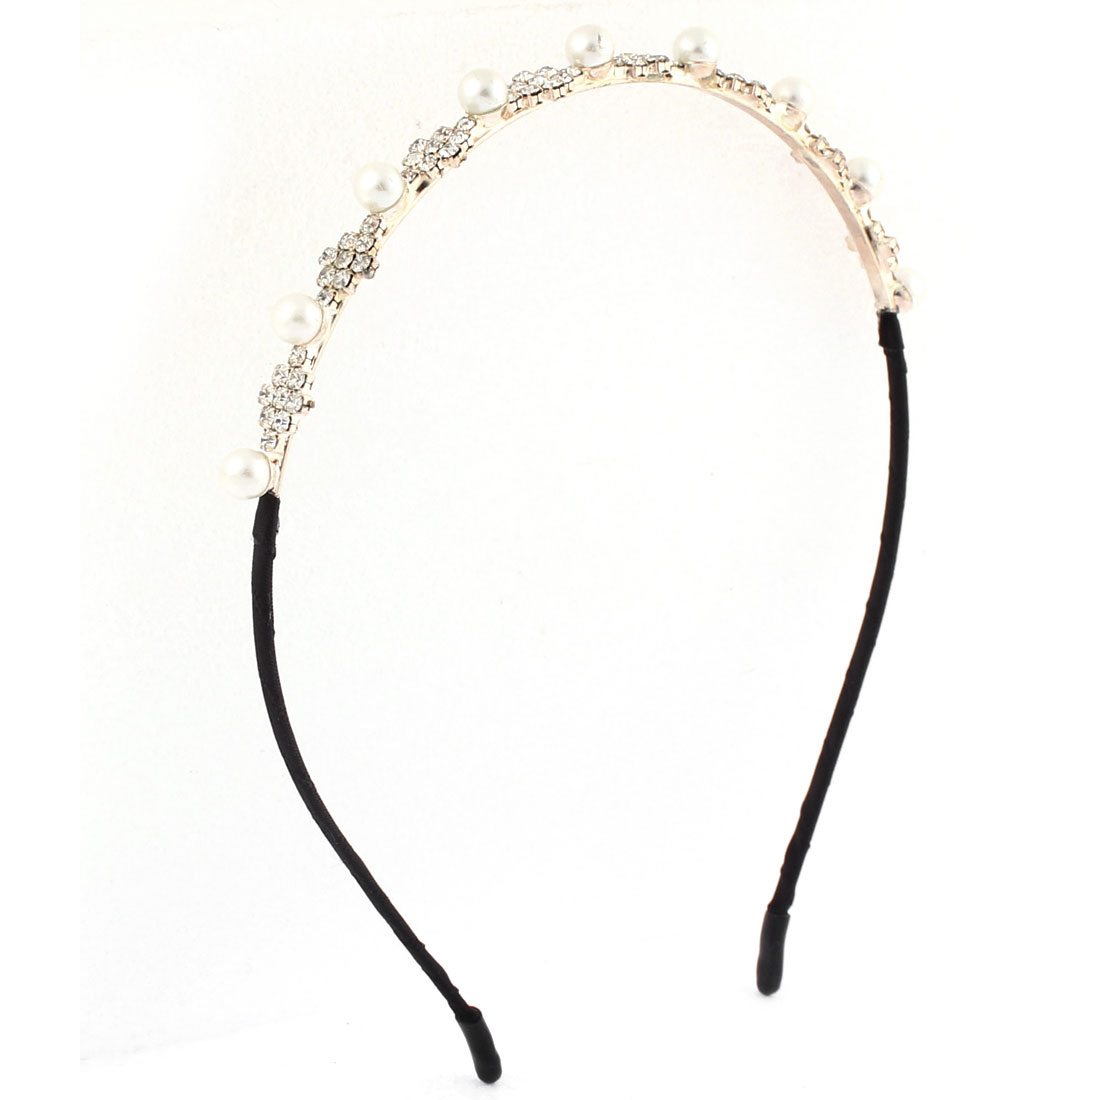 Lady Rhinestone Inlaid Plastic Pearl Decor Hair Hoop Bangs Hairband Headband